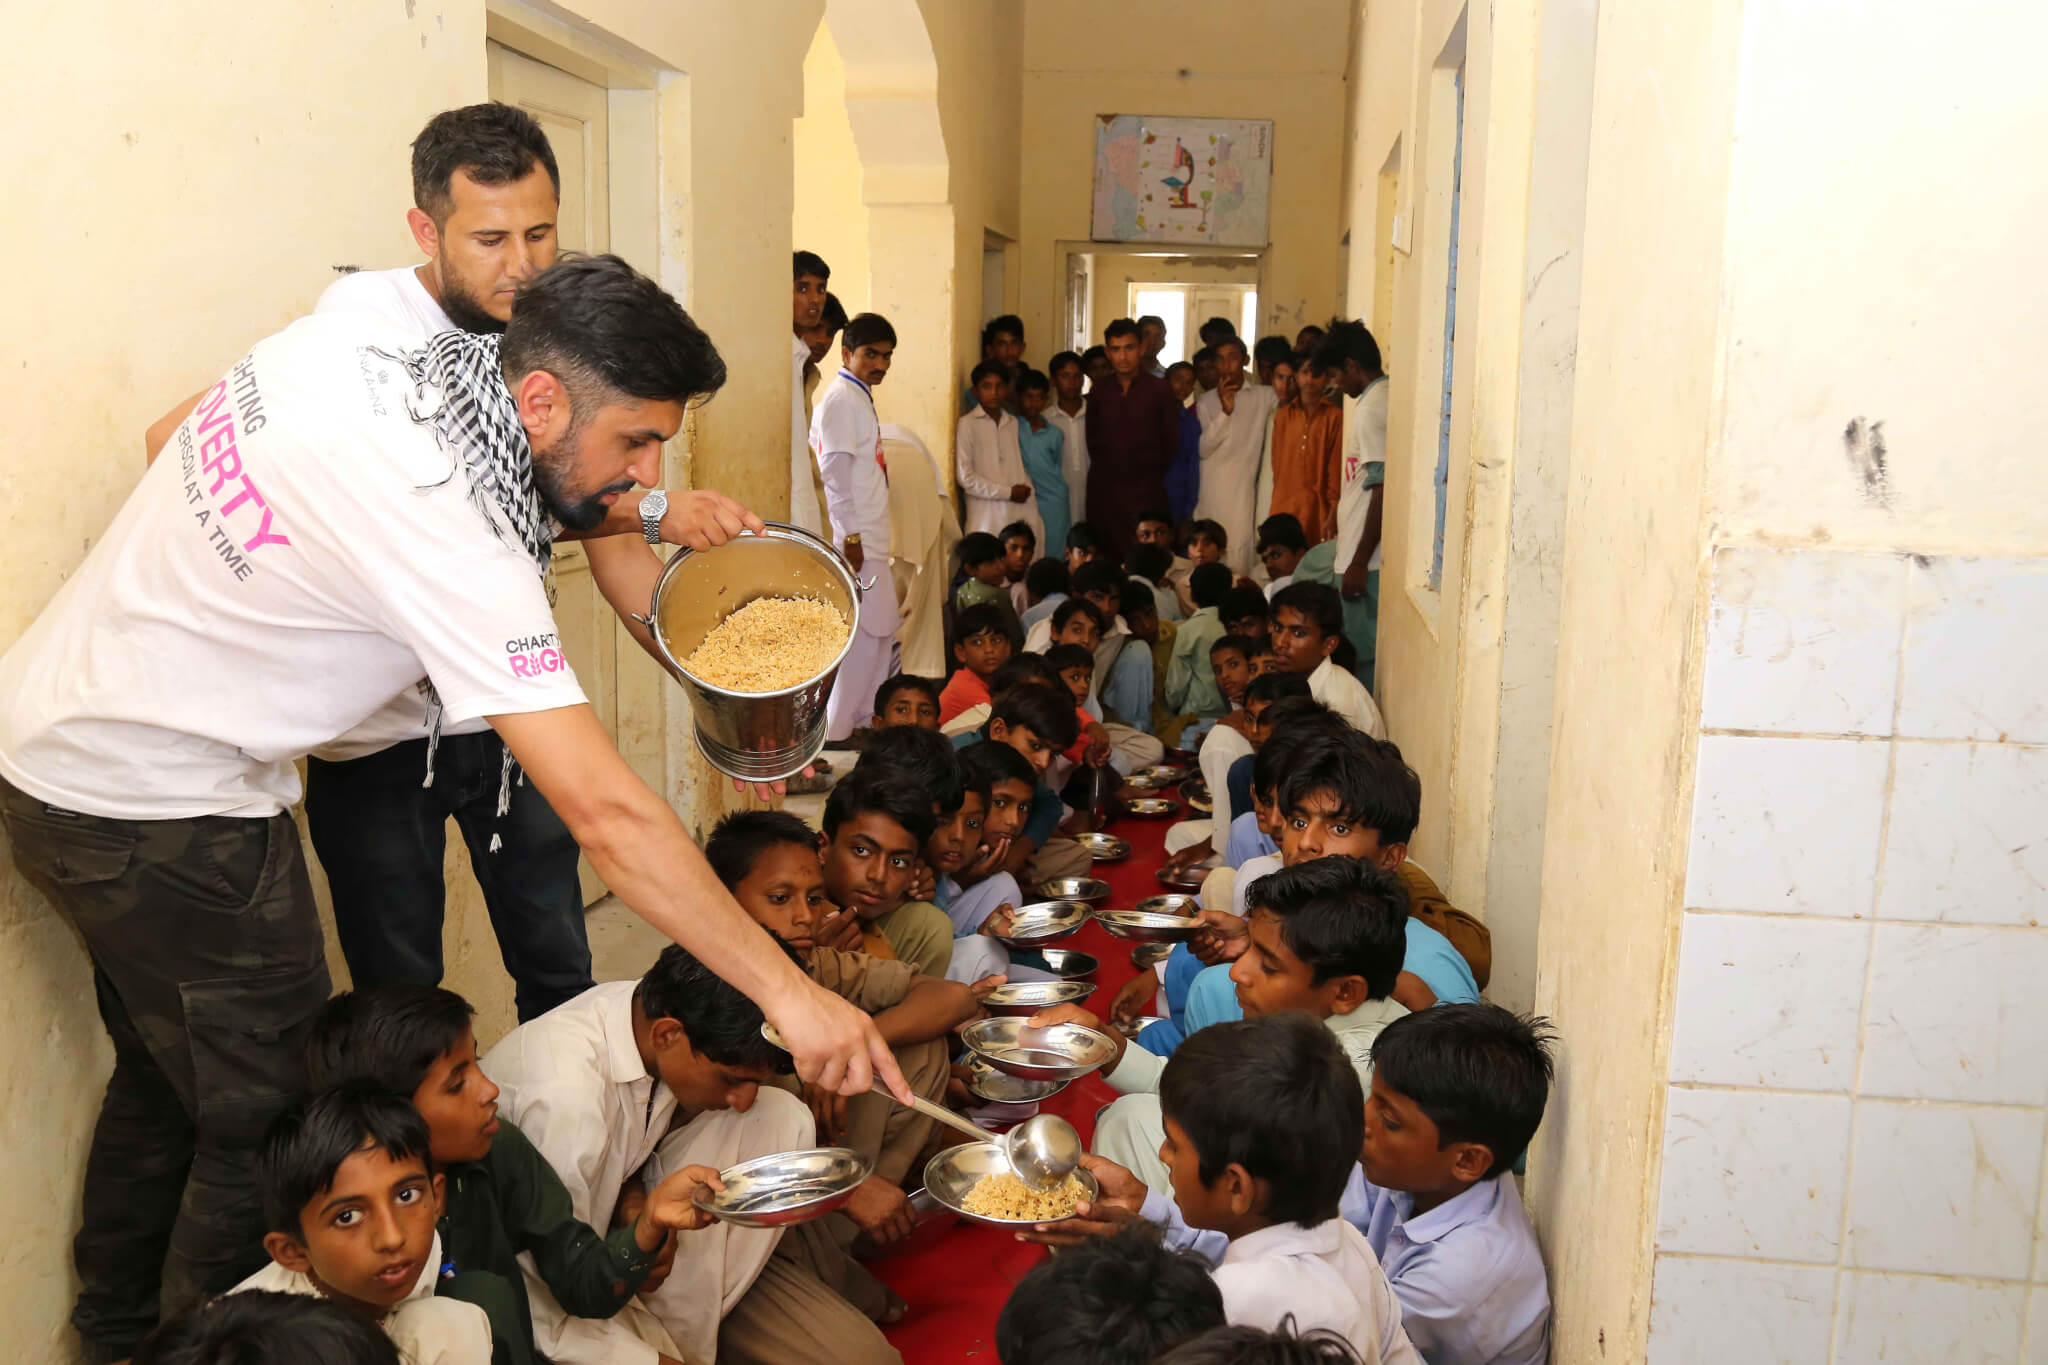 http://www.enkahnz.co.uk/wp-content/uploads/2019/07/FEEDING_THE_CHILDREN.jpg